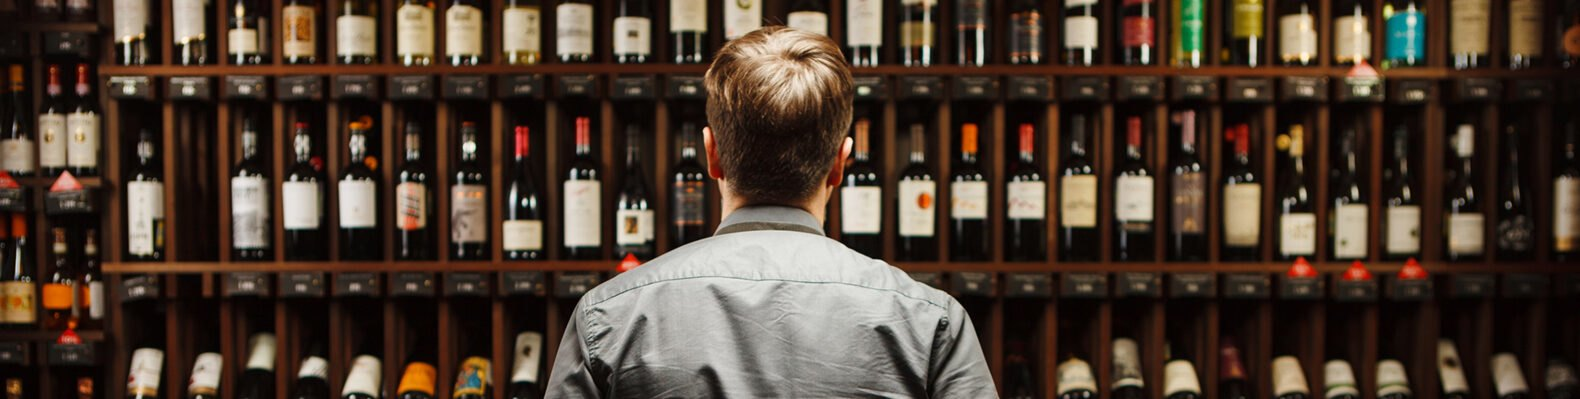 person standing in front of wall filled with wine bottles